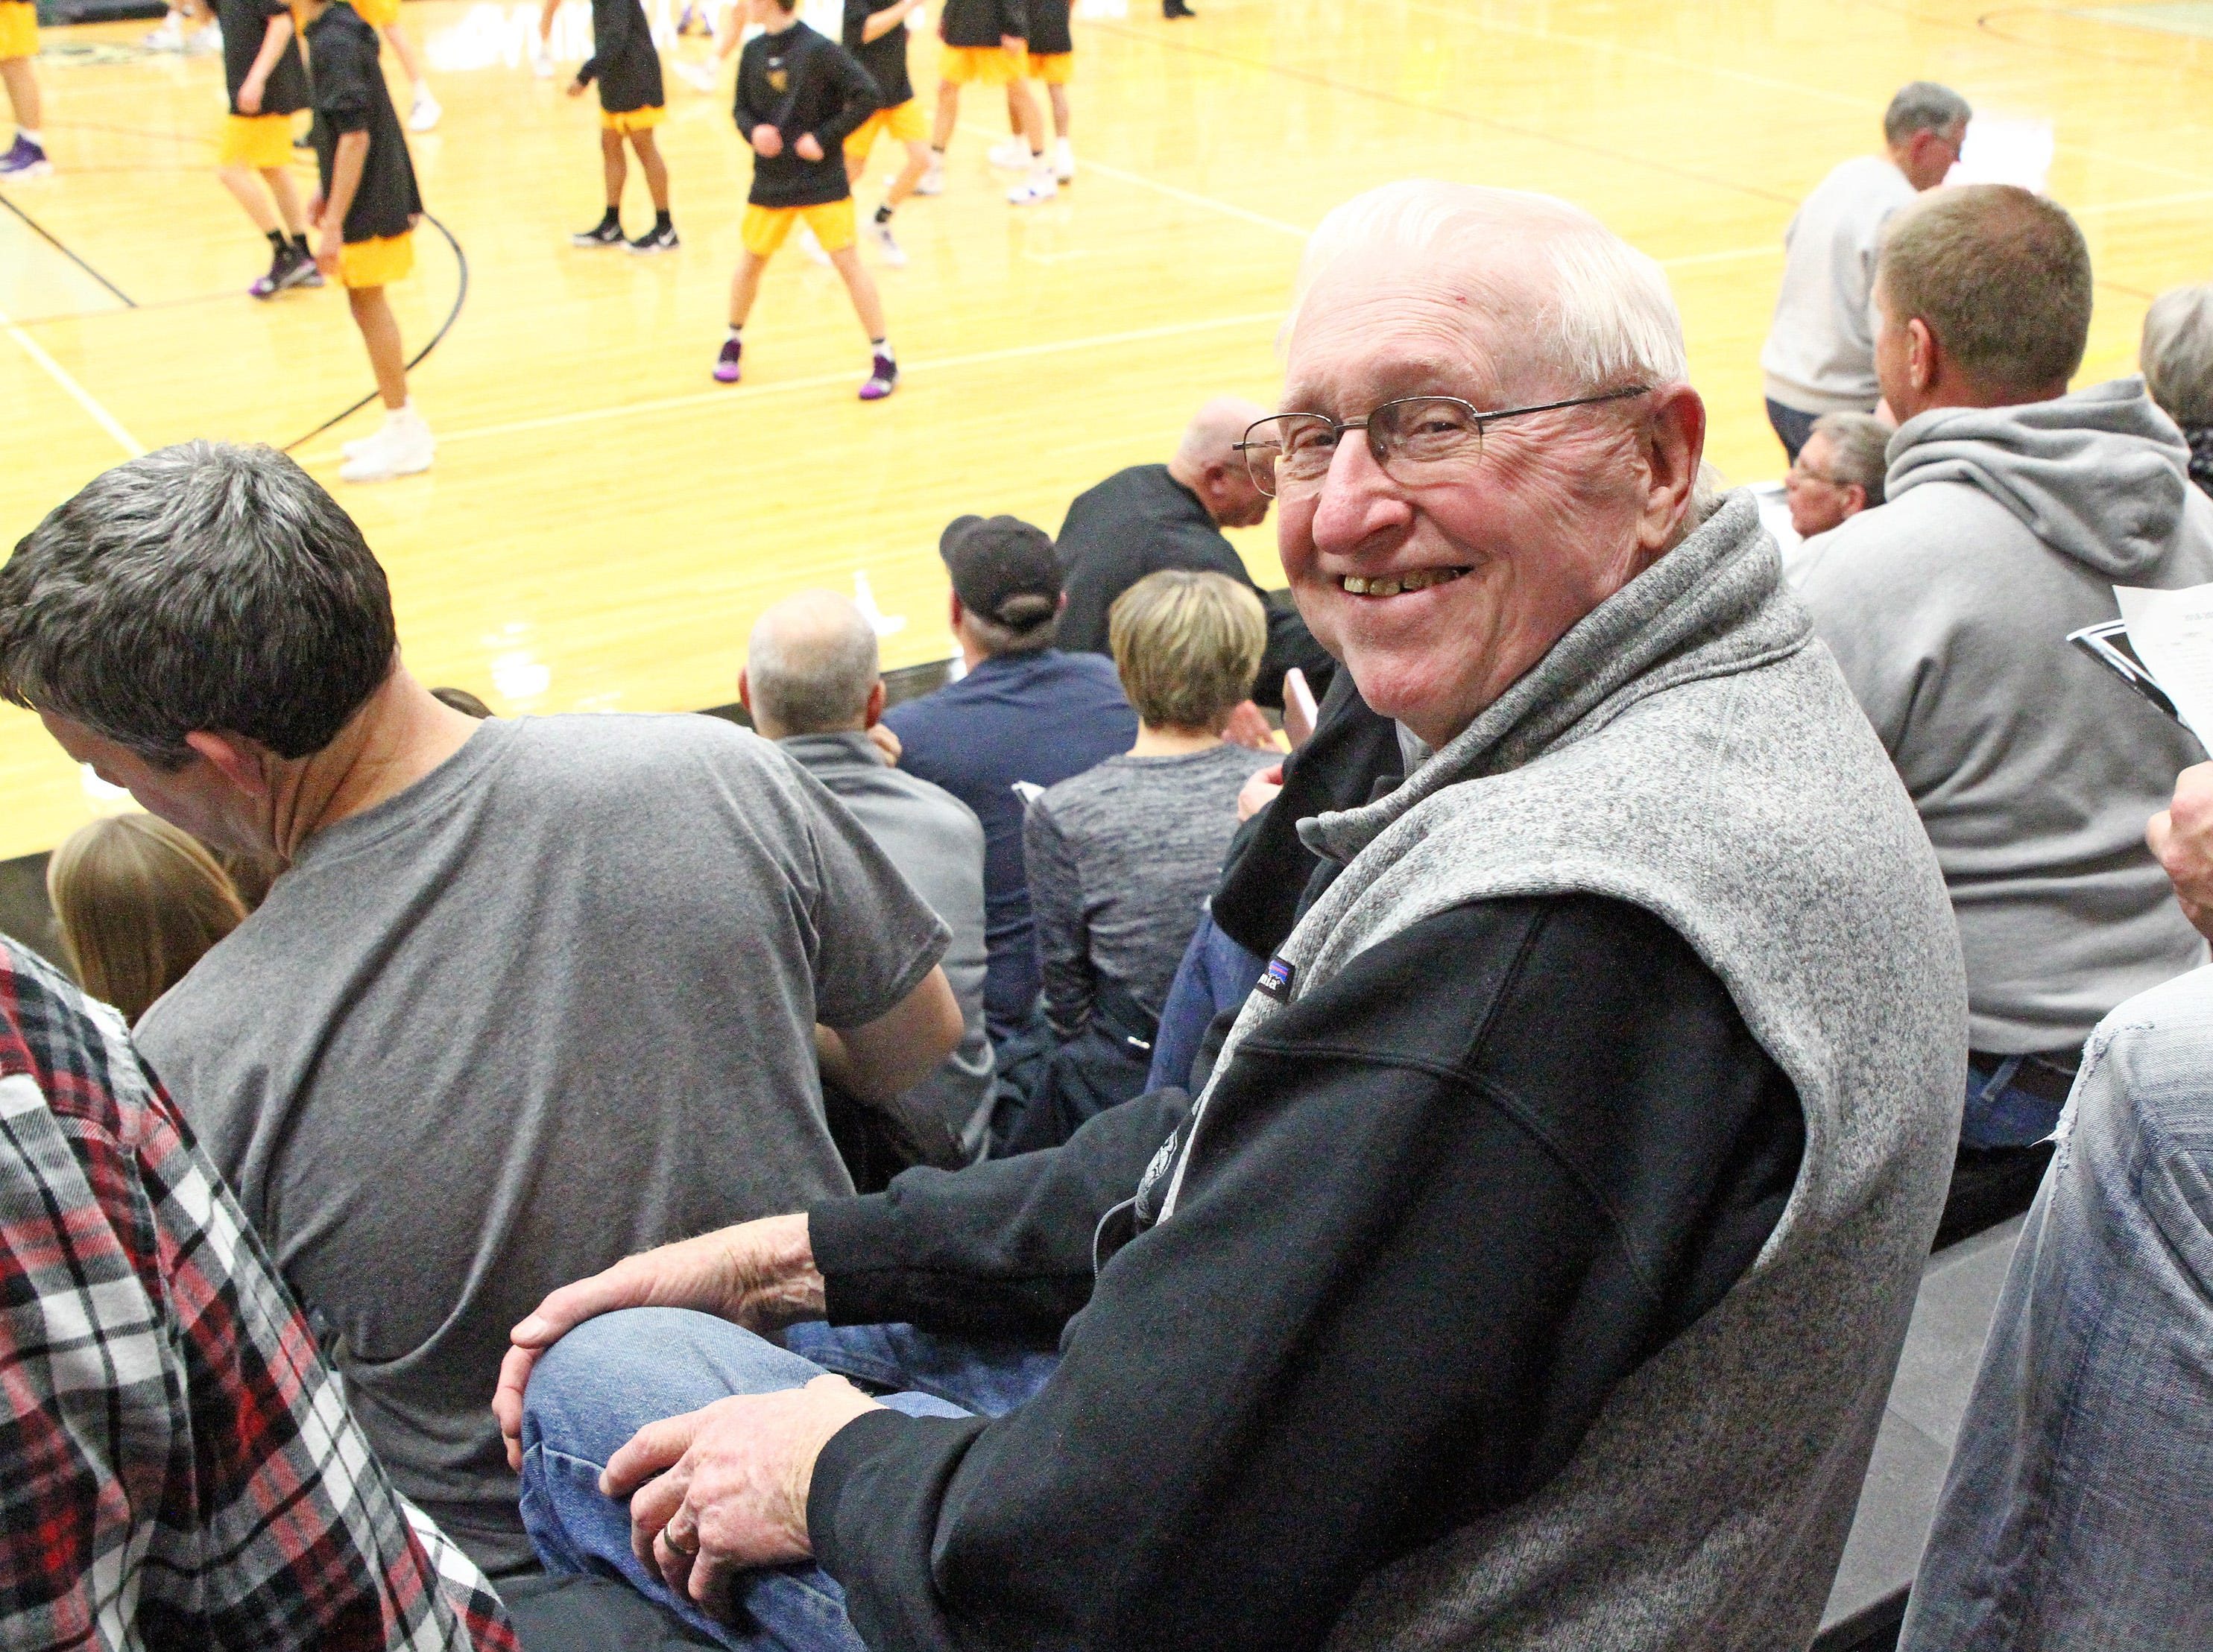 Hall of Fame member and former Ankeny girls head coach Dick Rasmussen, three State Championship teams with 6-on-6, enjoys Friday Night hoops as the Johnston Dragons compete against the Ankeny Centennial Jaguars in high school girls basketball on Friday, Jan. 4, 2019 at Ankeny Centennial High School.